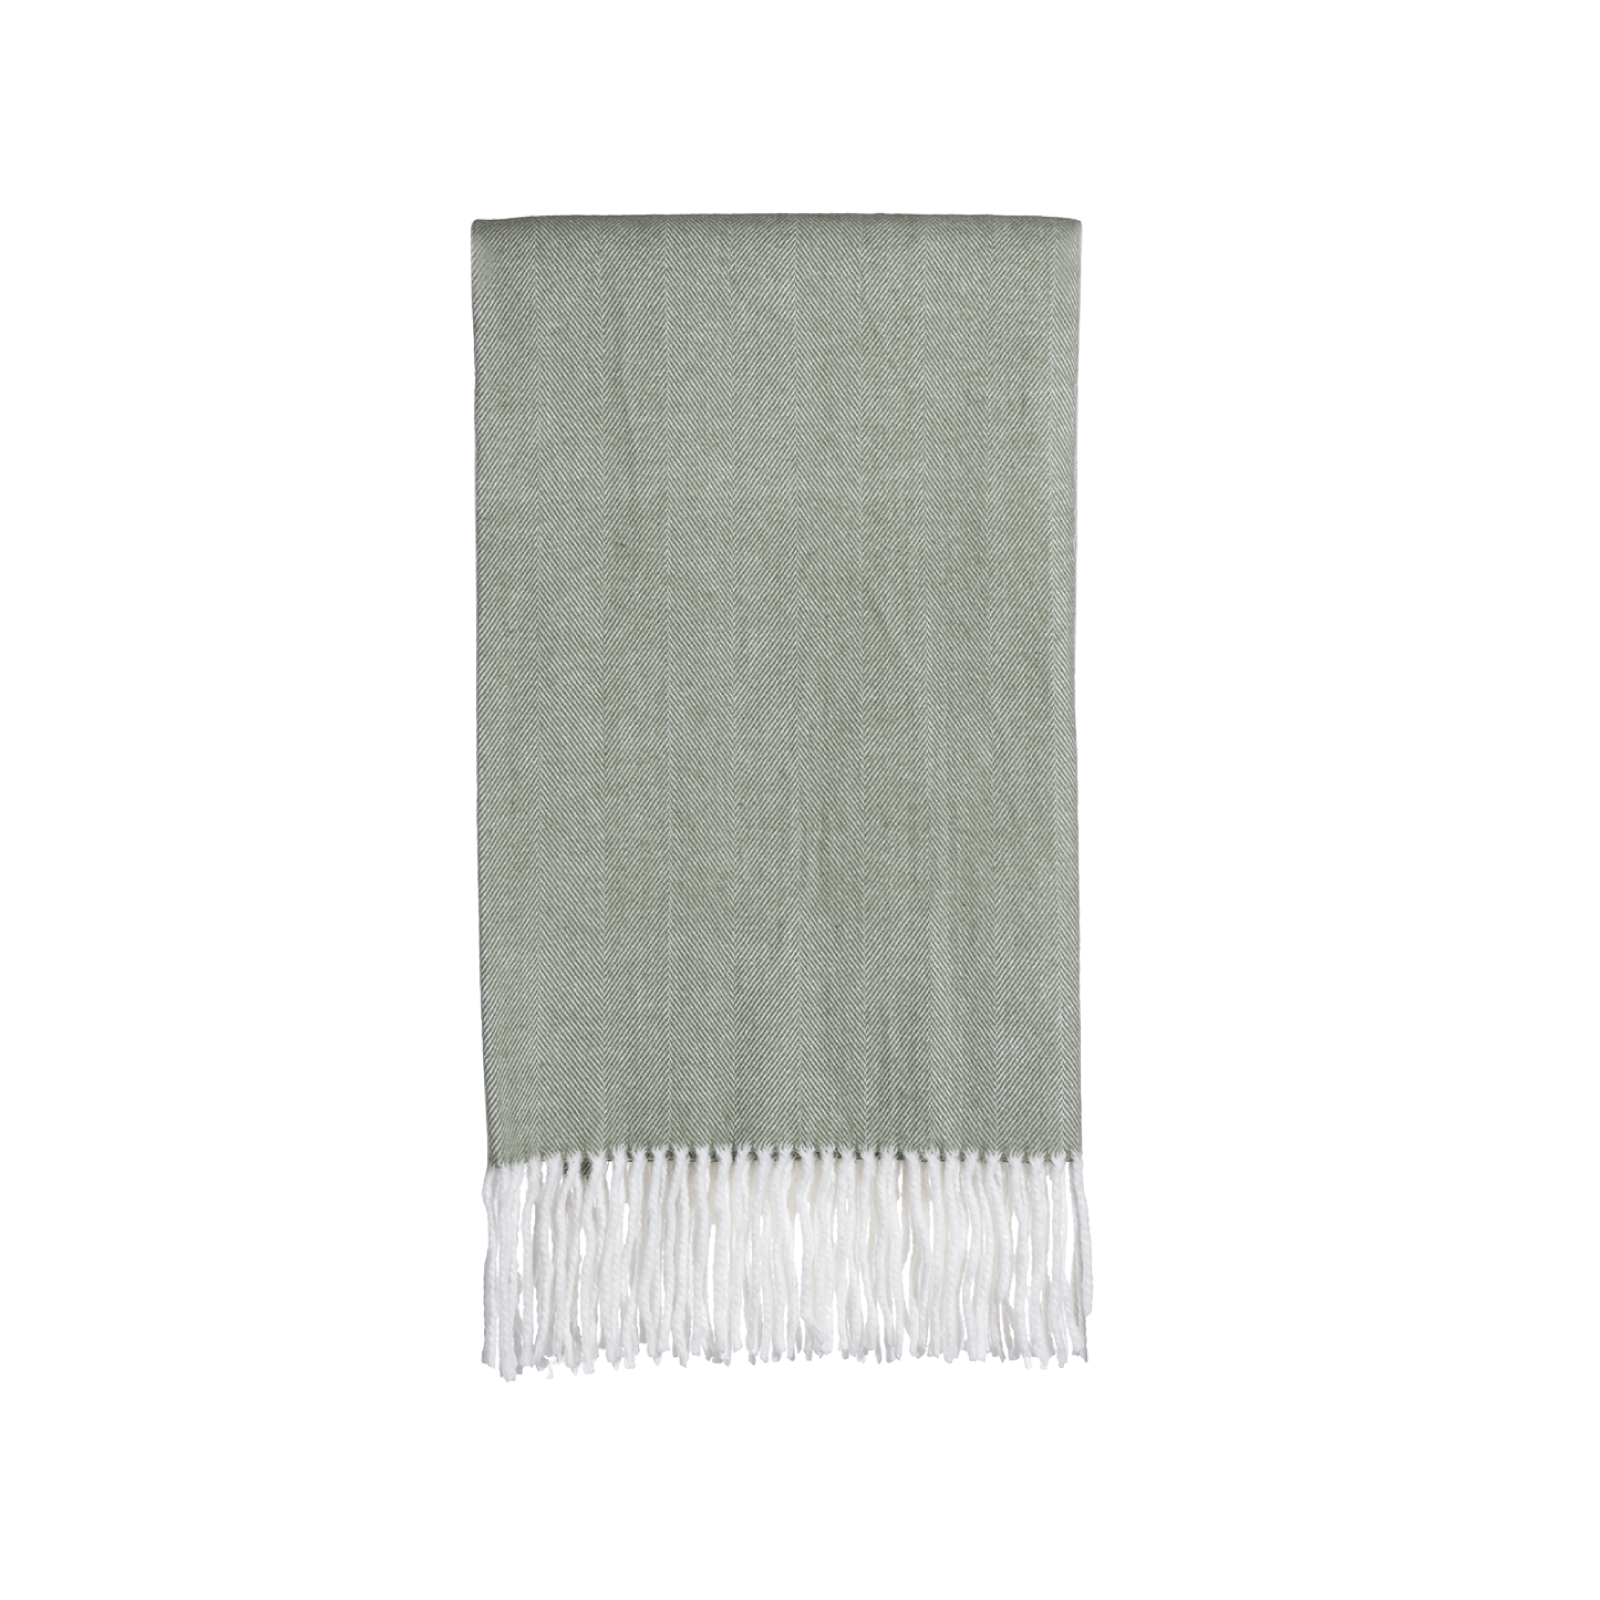 Gemma Throw in Sage Herringbone no. 1